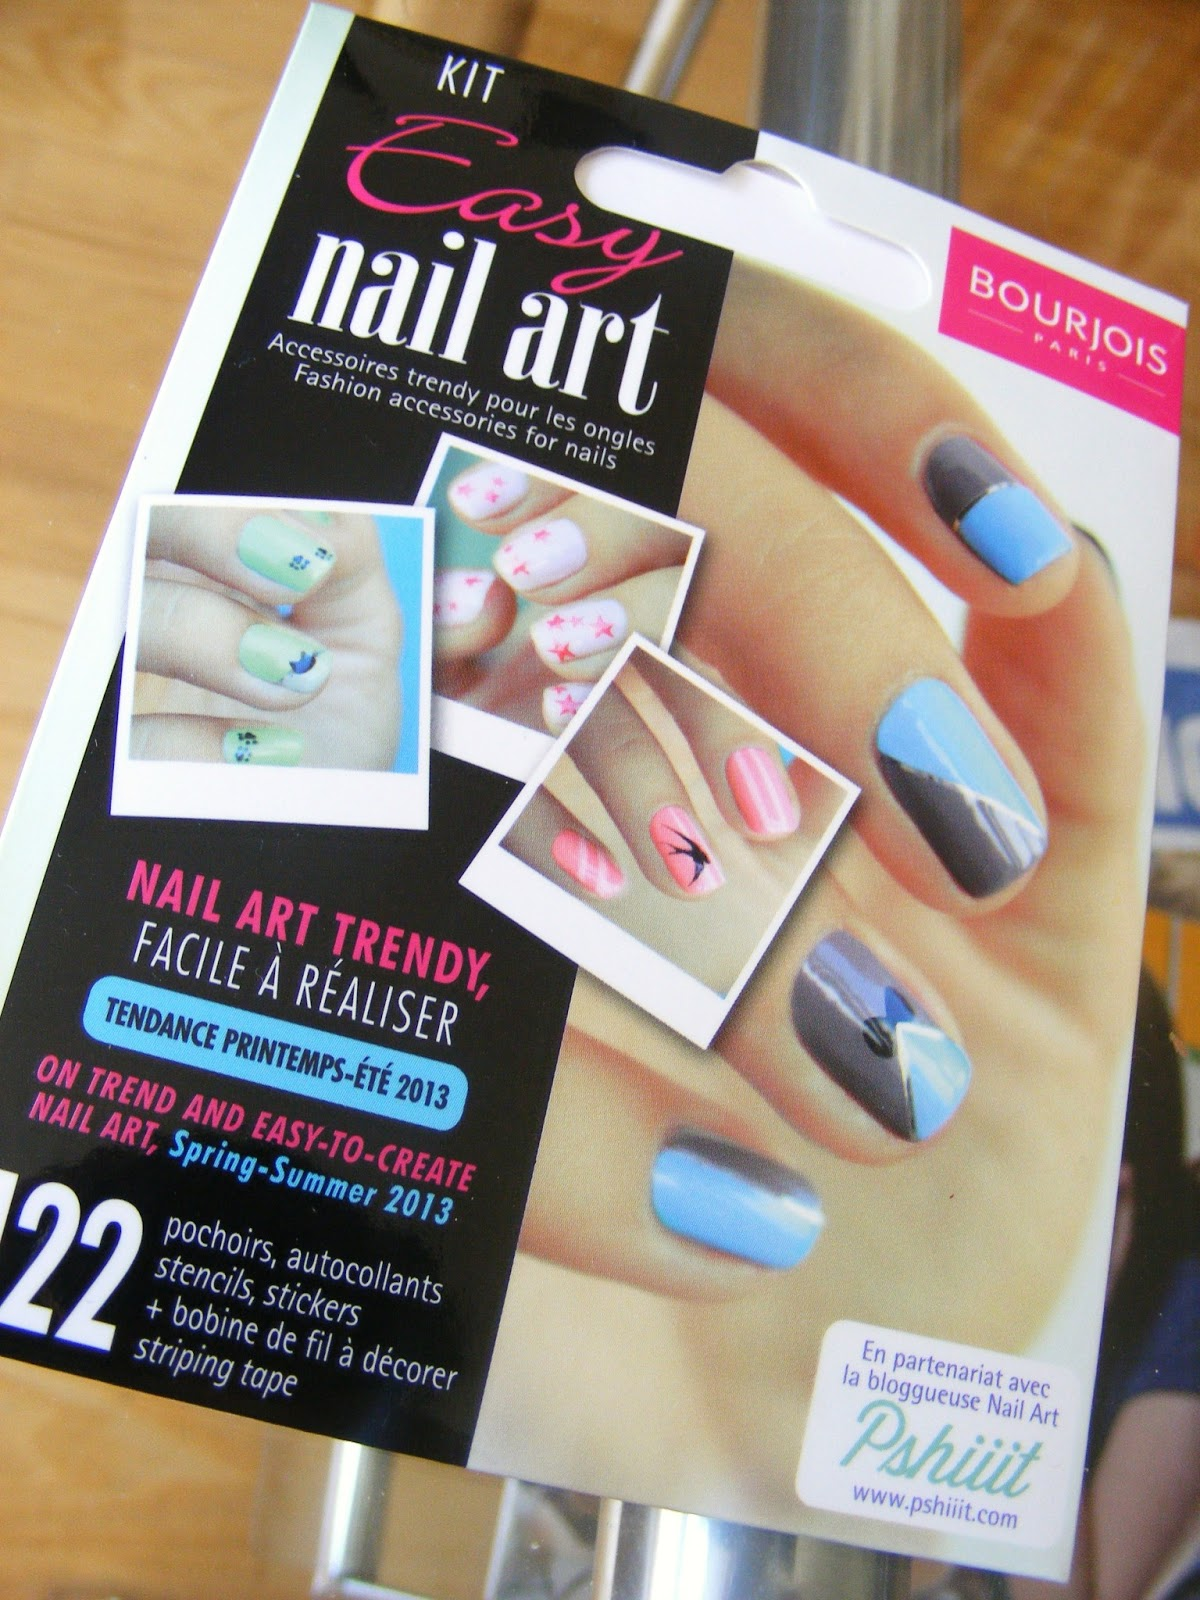 Nails Bourjois Nail Art Kit Review Oh Hey There Rachel